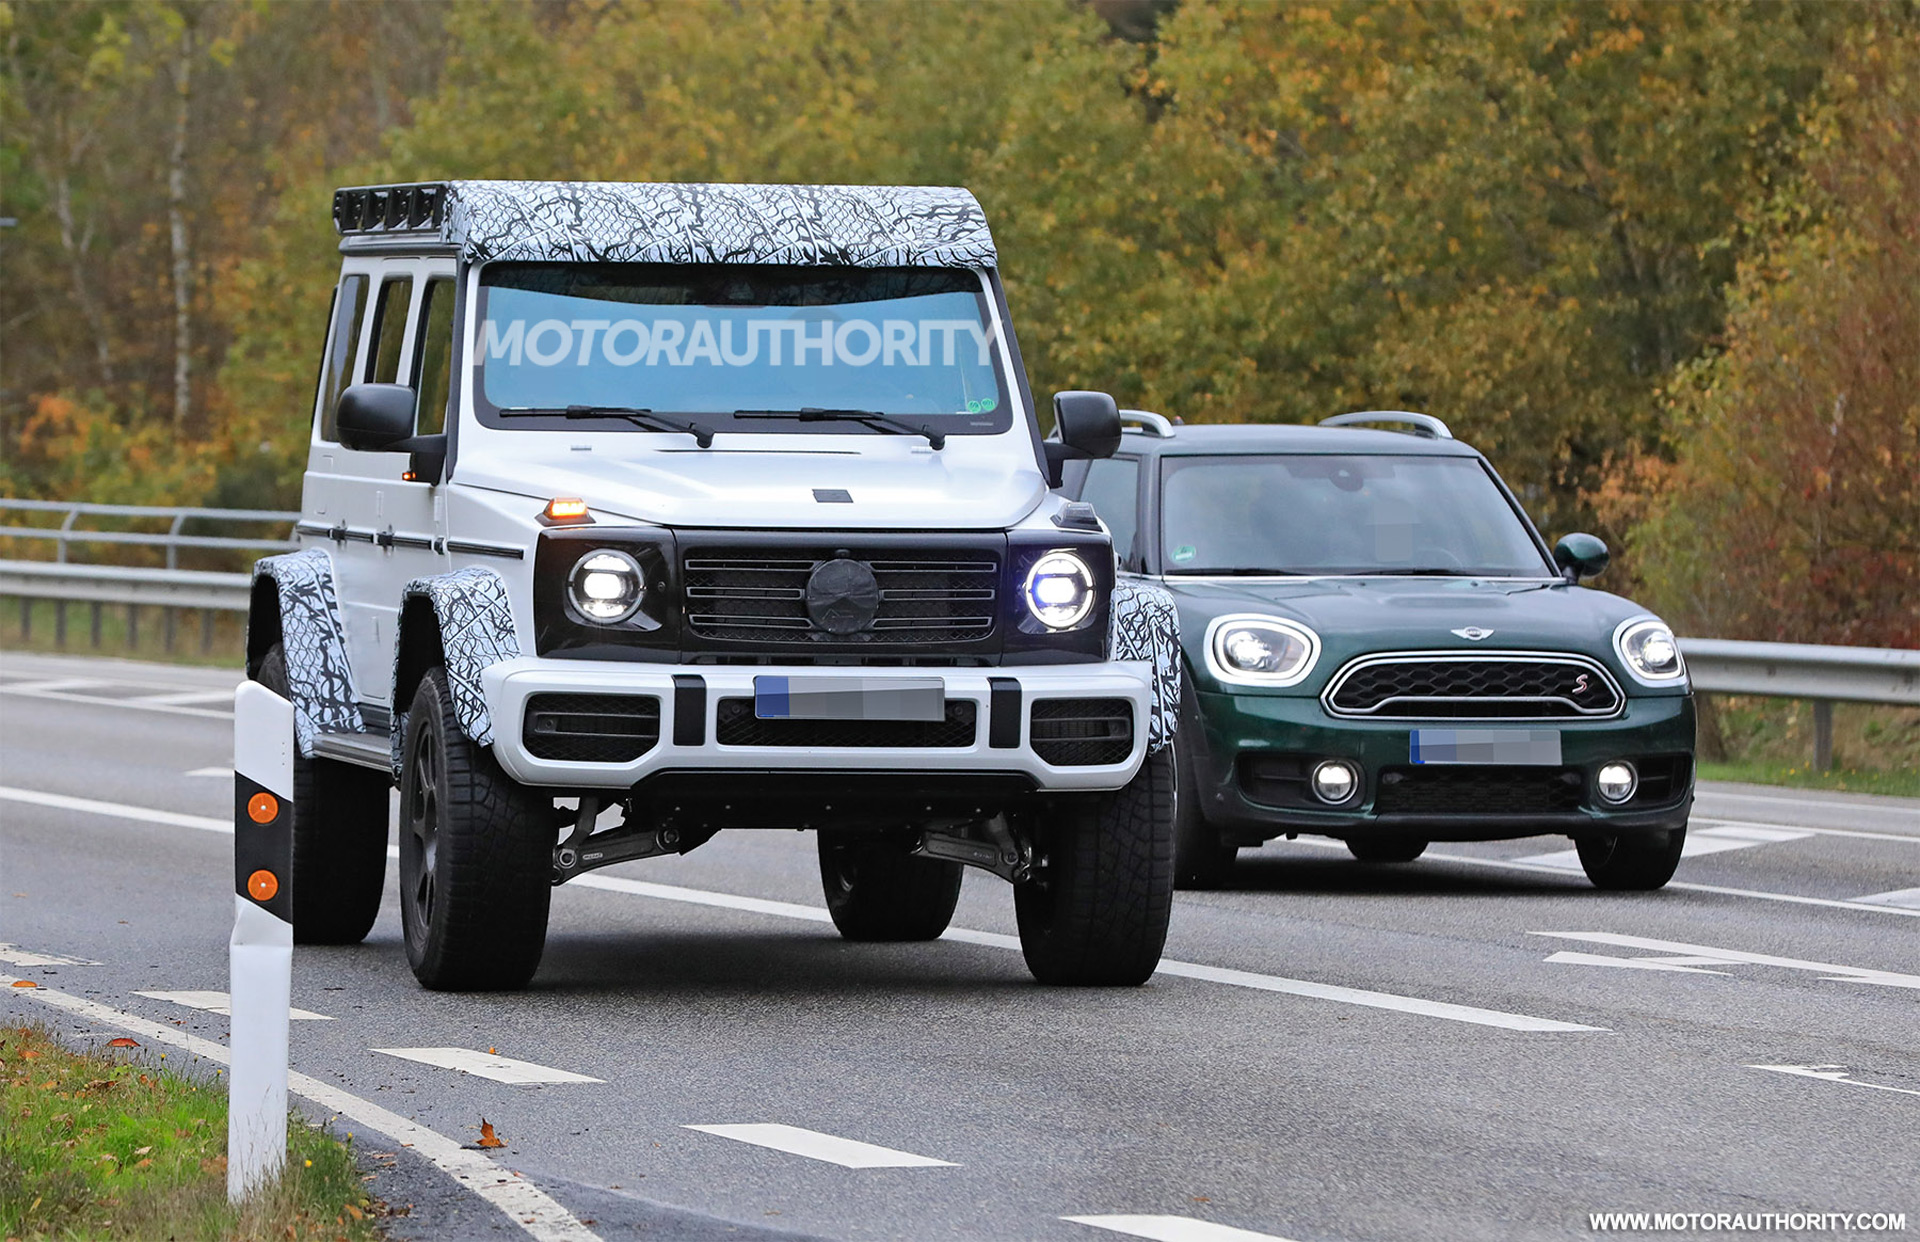 2022 Mercedes Benz G Class 4x4 Squared Spy Shots Luxury Monster Truck Set For Return